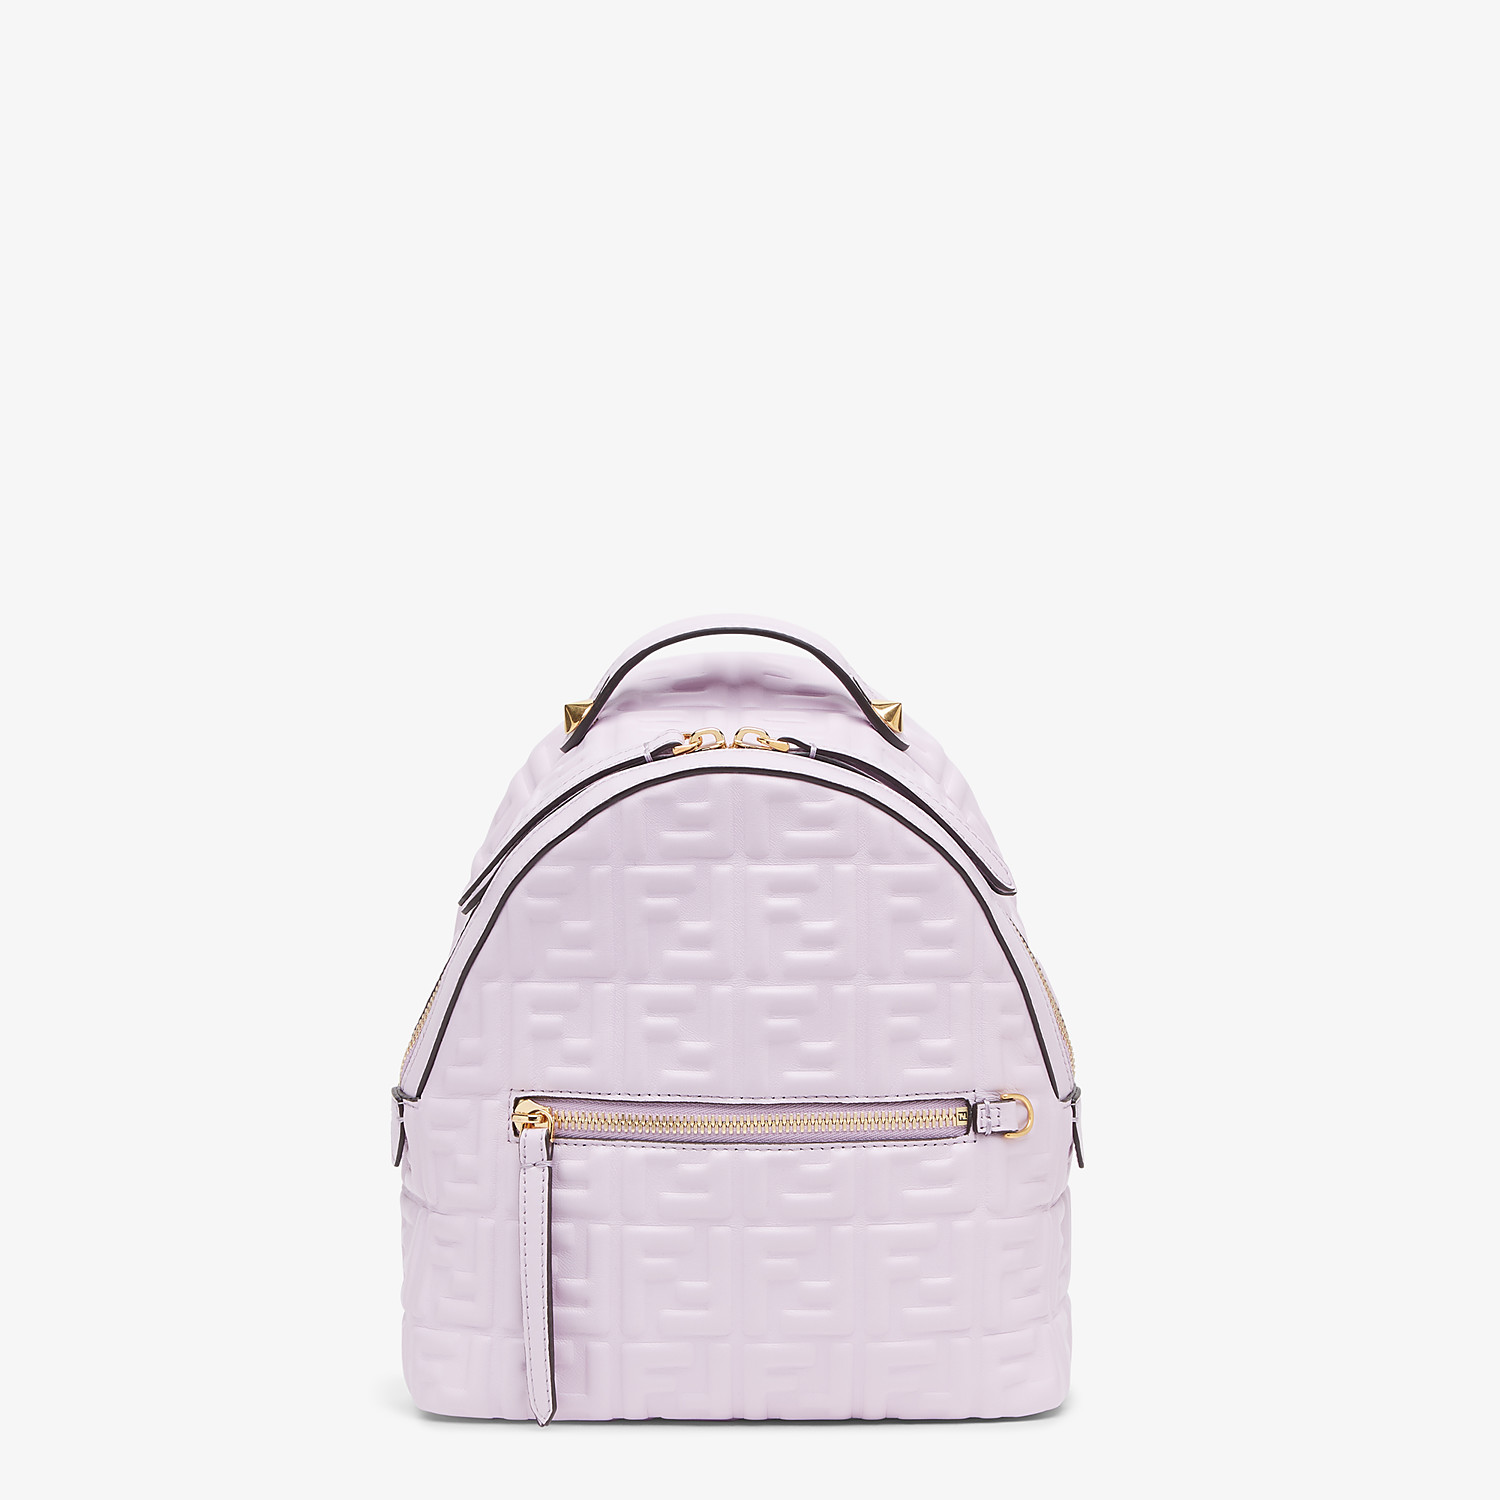 FENDI MINI BACKPACK - Lilac leather FF backpack - view 1 detail